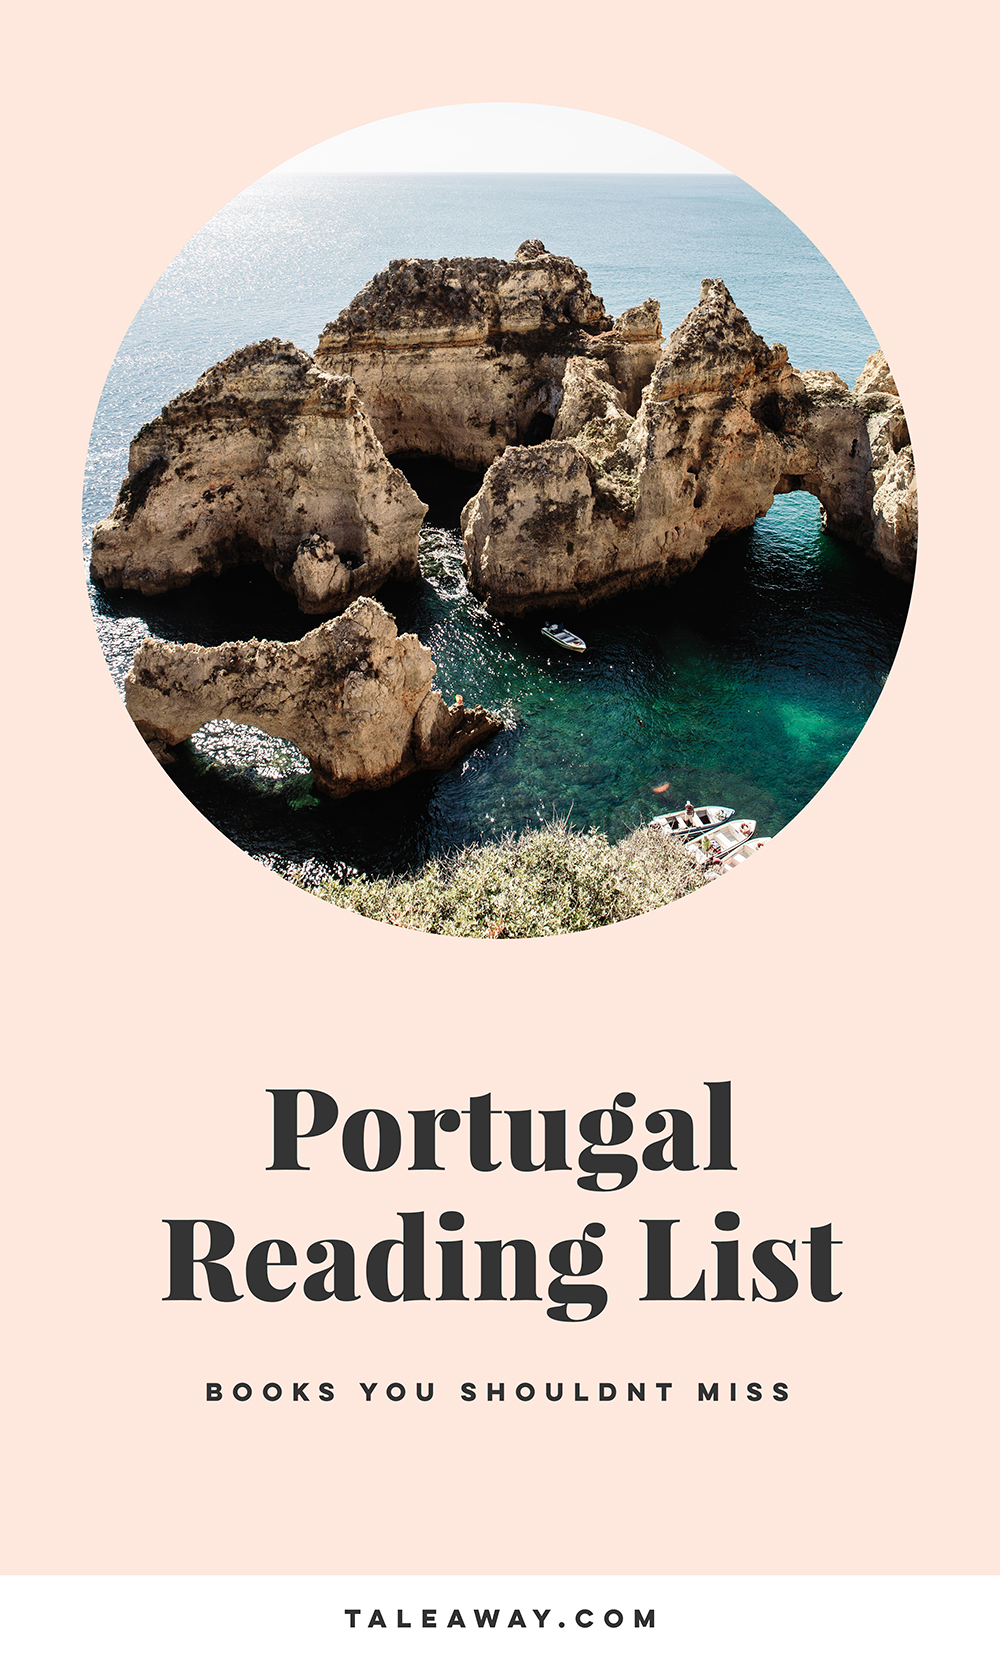 Books Set In Portugal - For more books that inspire travel visit www.taleway.com. best books about portugal, books on portugal history, journey to portugal, best portuguese novels, books set in lisbon, novels set in porto, historical fiction portugal, famous portuguese books, portuguese writers, portuguese literature, portuguese fiction, trip reading, books set in different countries